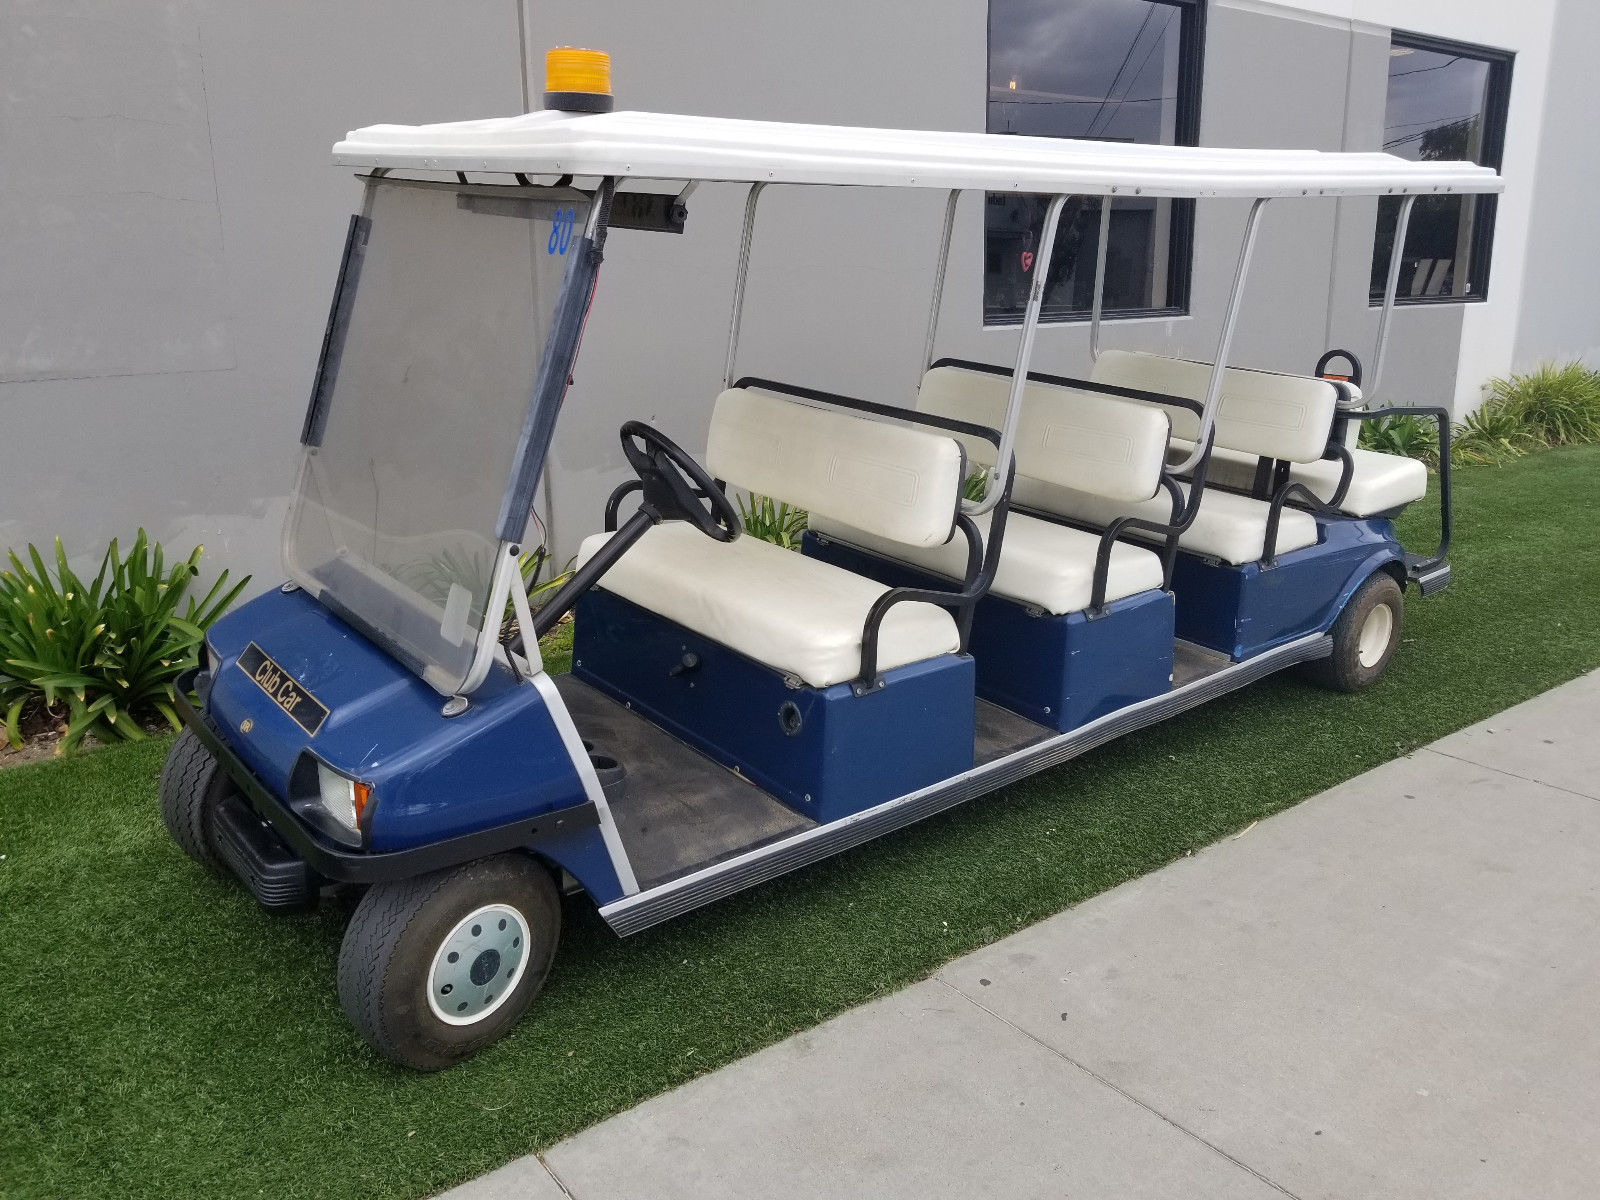 Limousine 2002 Club Car Villager 8 Passenger Golf Cart For